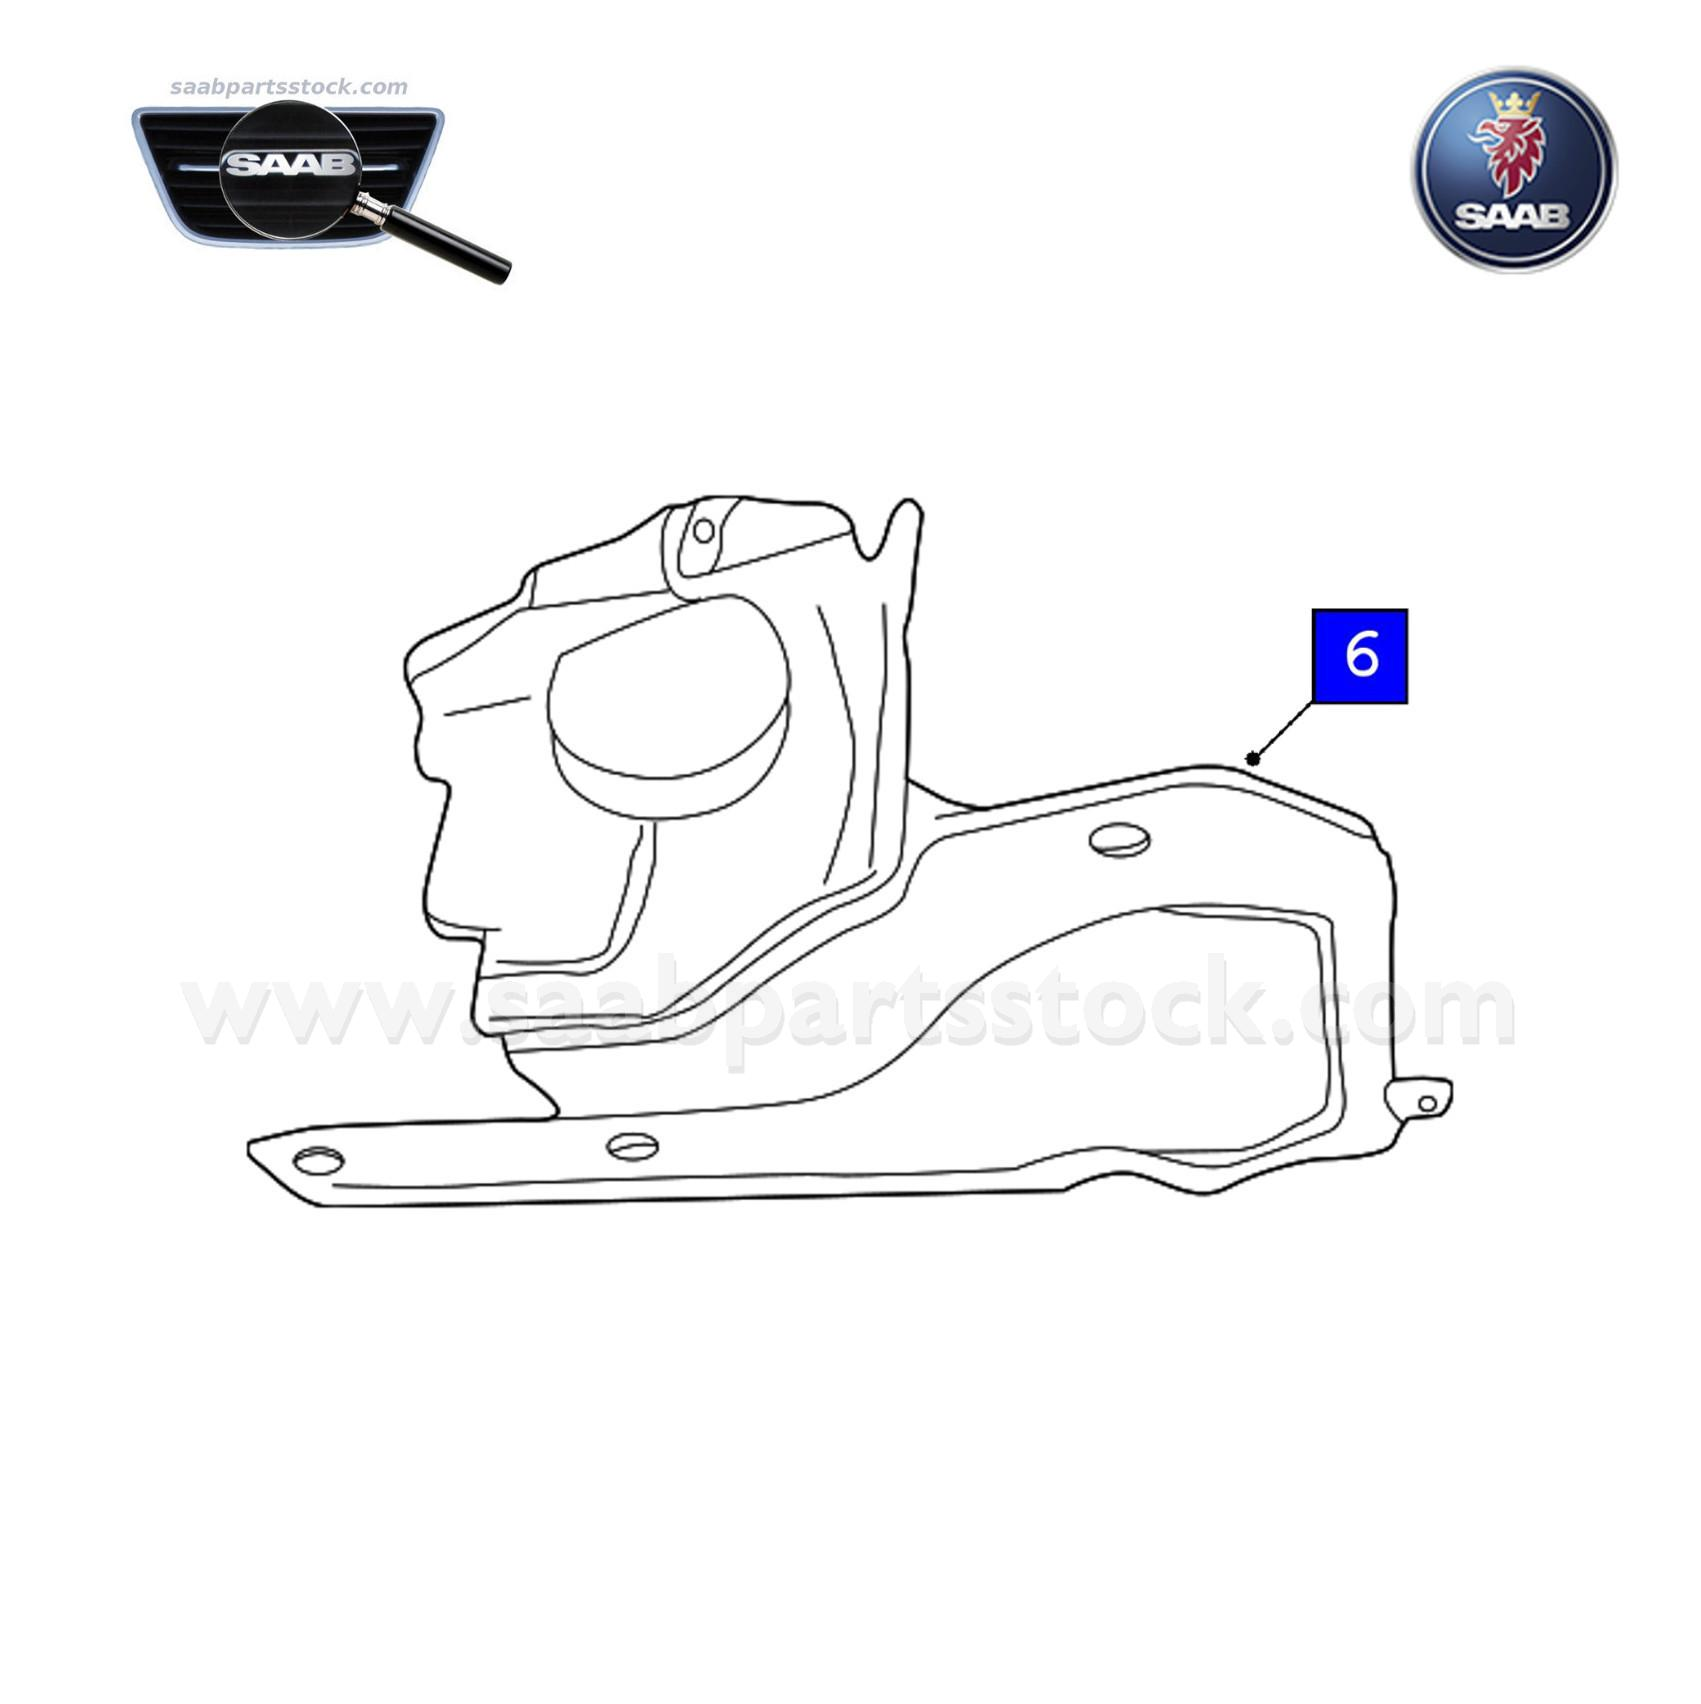 Protection Shield For Drive Belt, right side SAAB 4954954